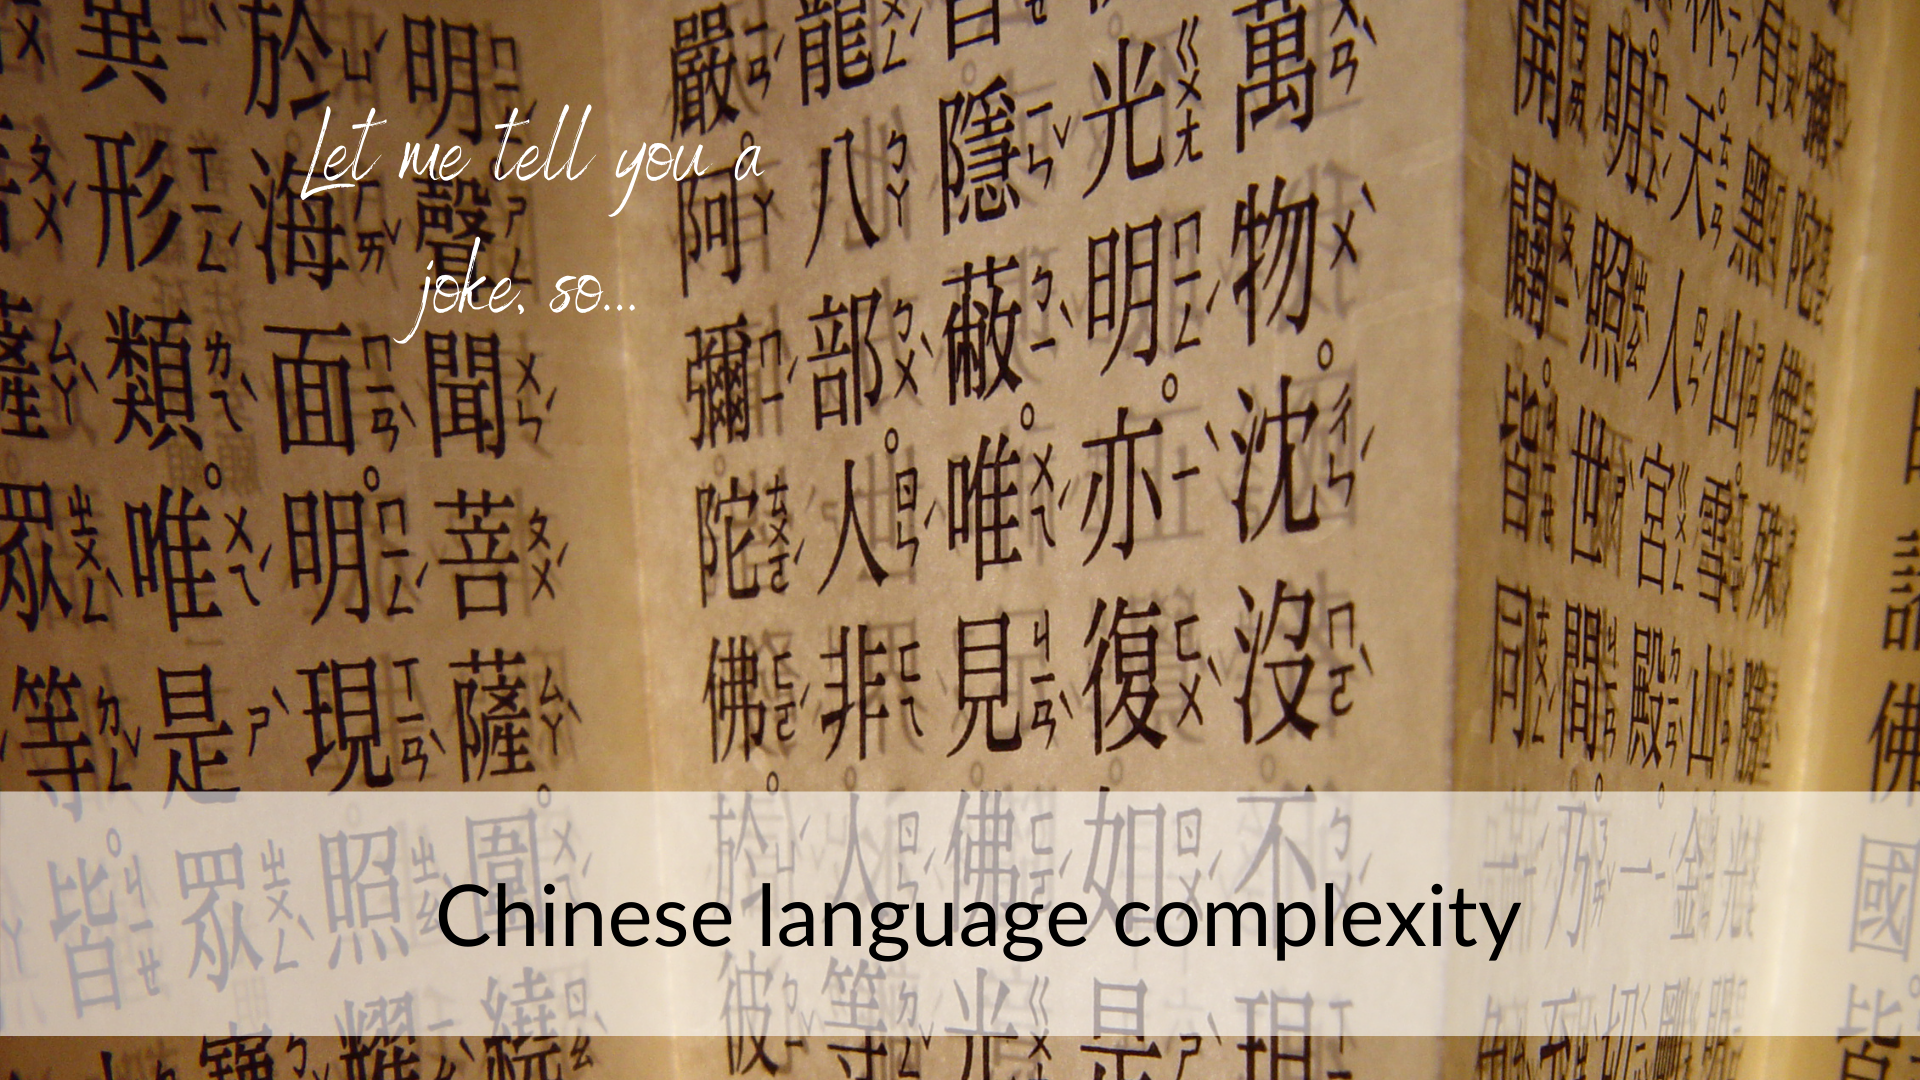 Chinese language complexity